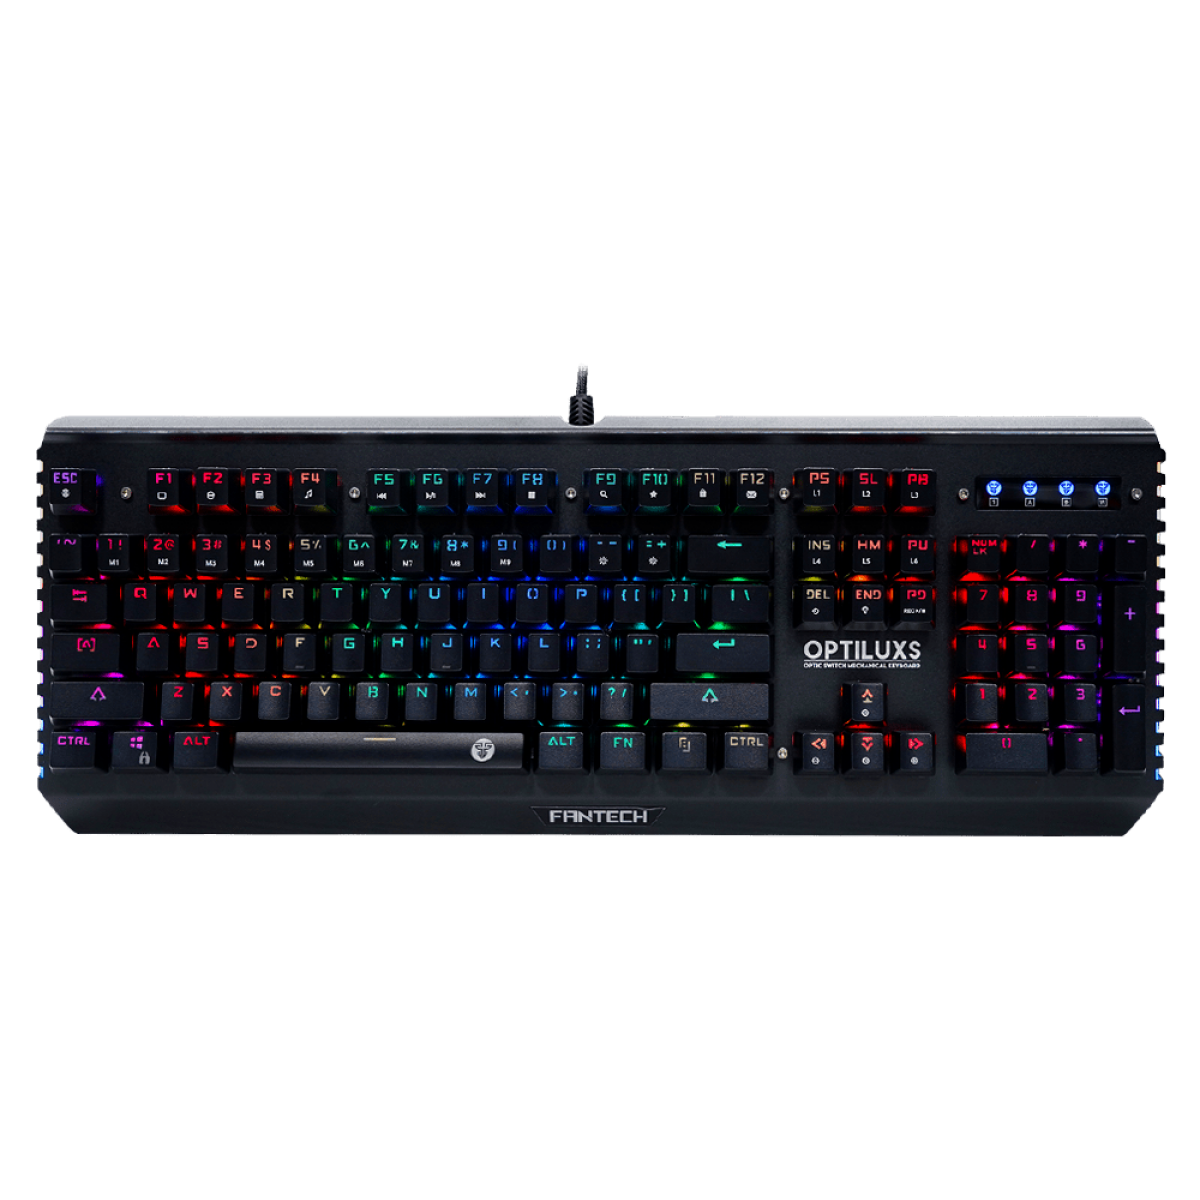 Teclado Gamer Mecânico Fantech Optiluxs, RGB, Switch Blue, Black, MK884